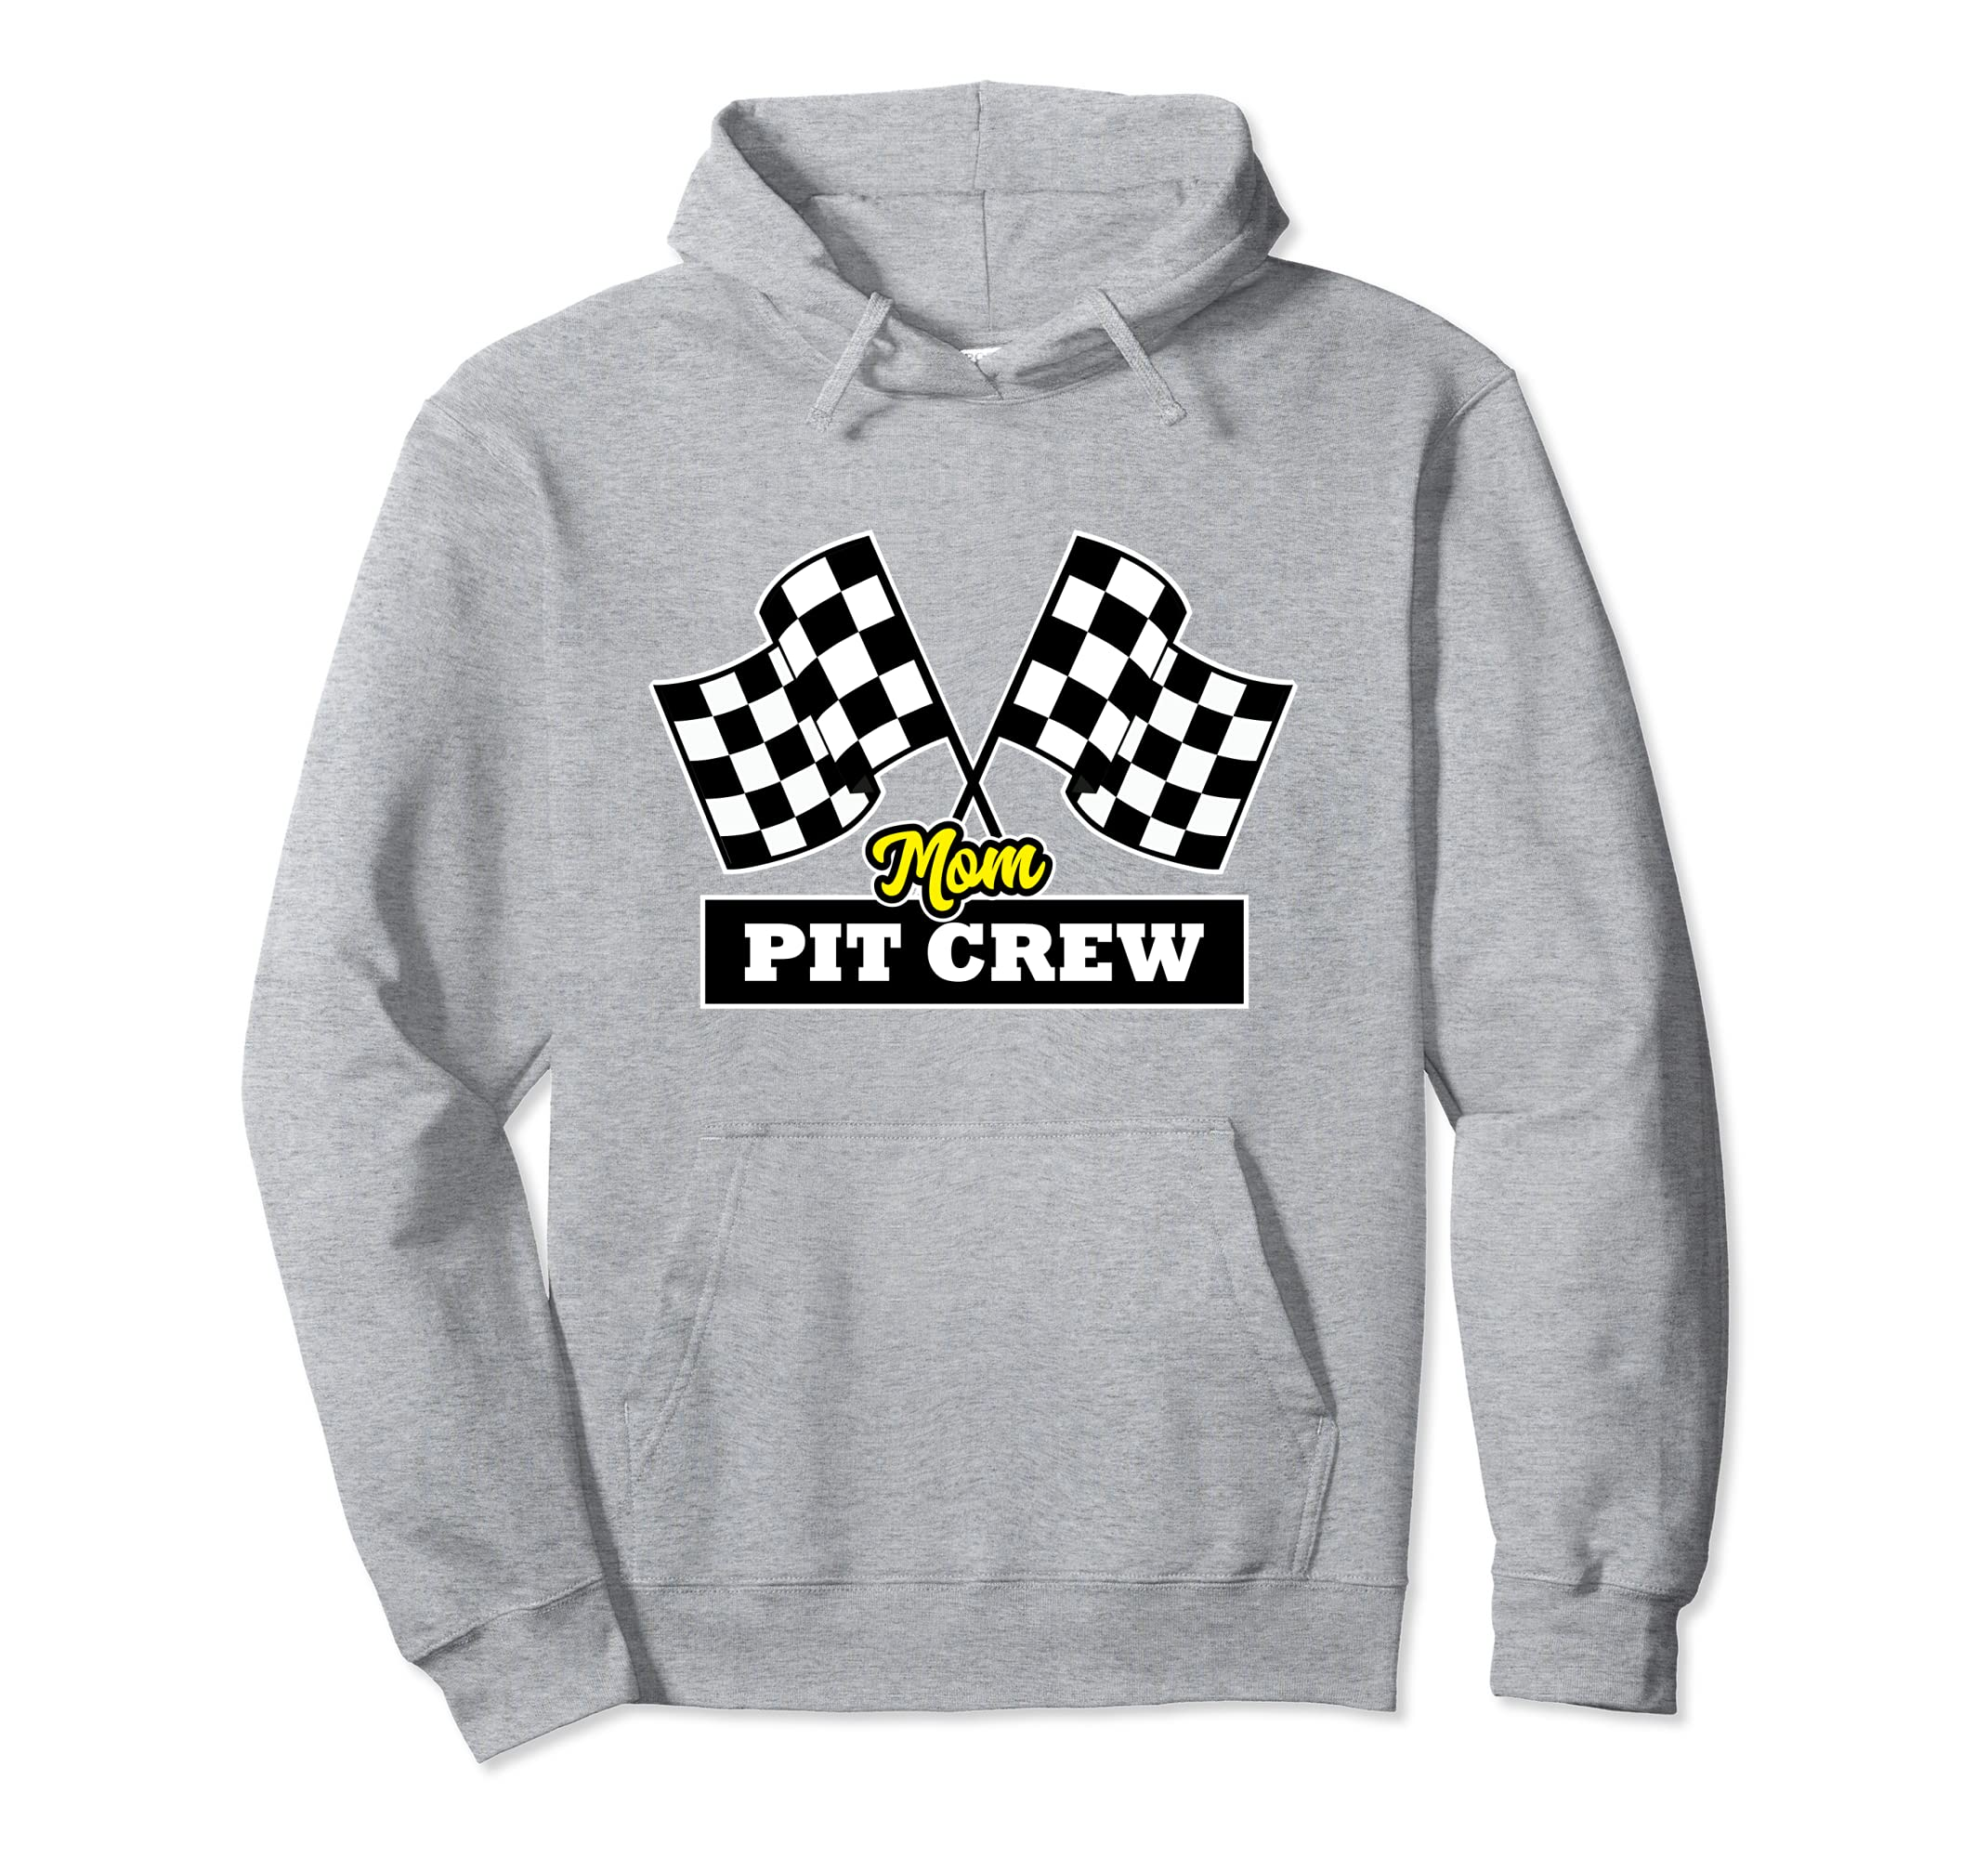 Pit Crew Shirts >> Pit Crew Shirts For Racing Party Mom Pit Hoodie Colonhue